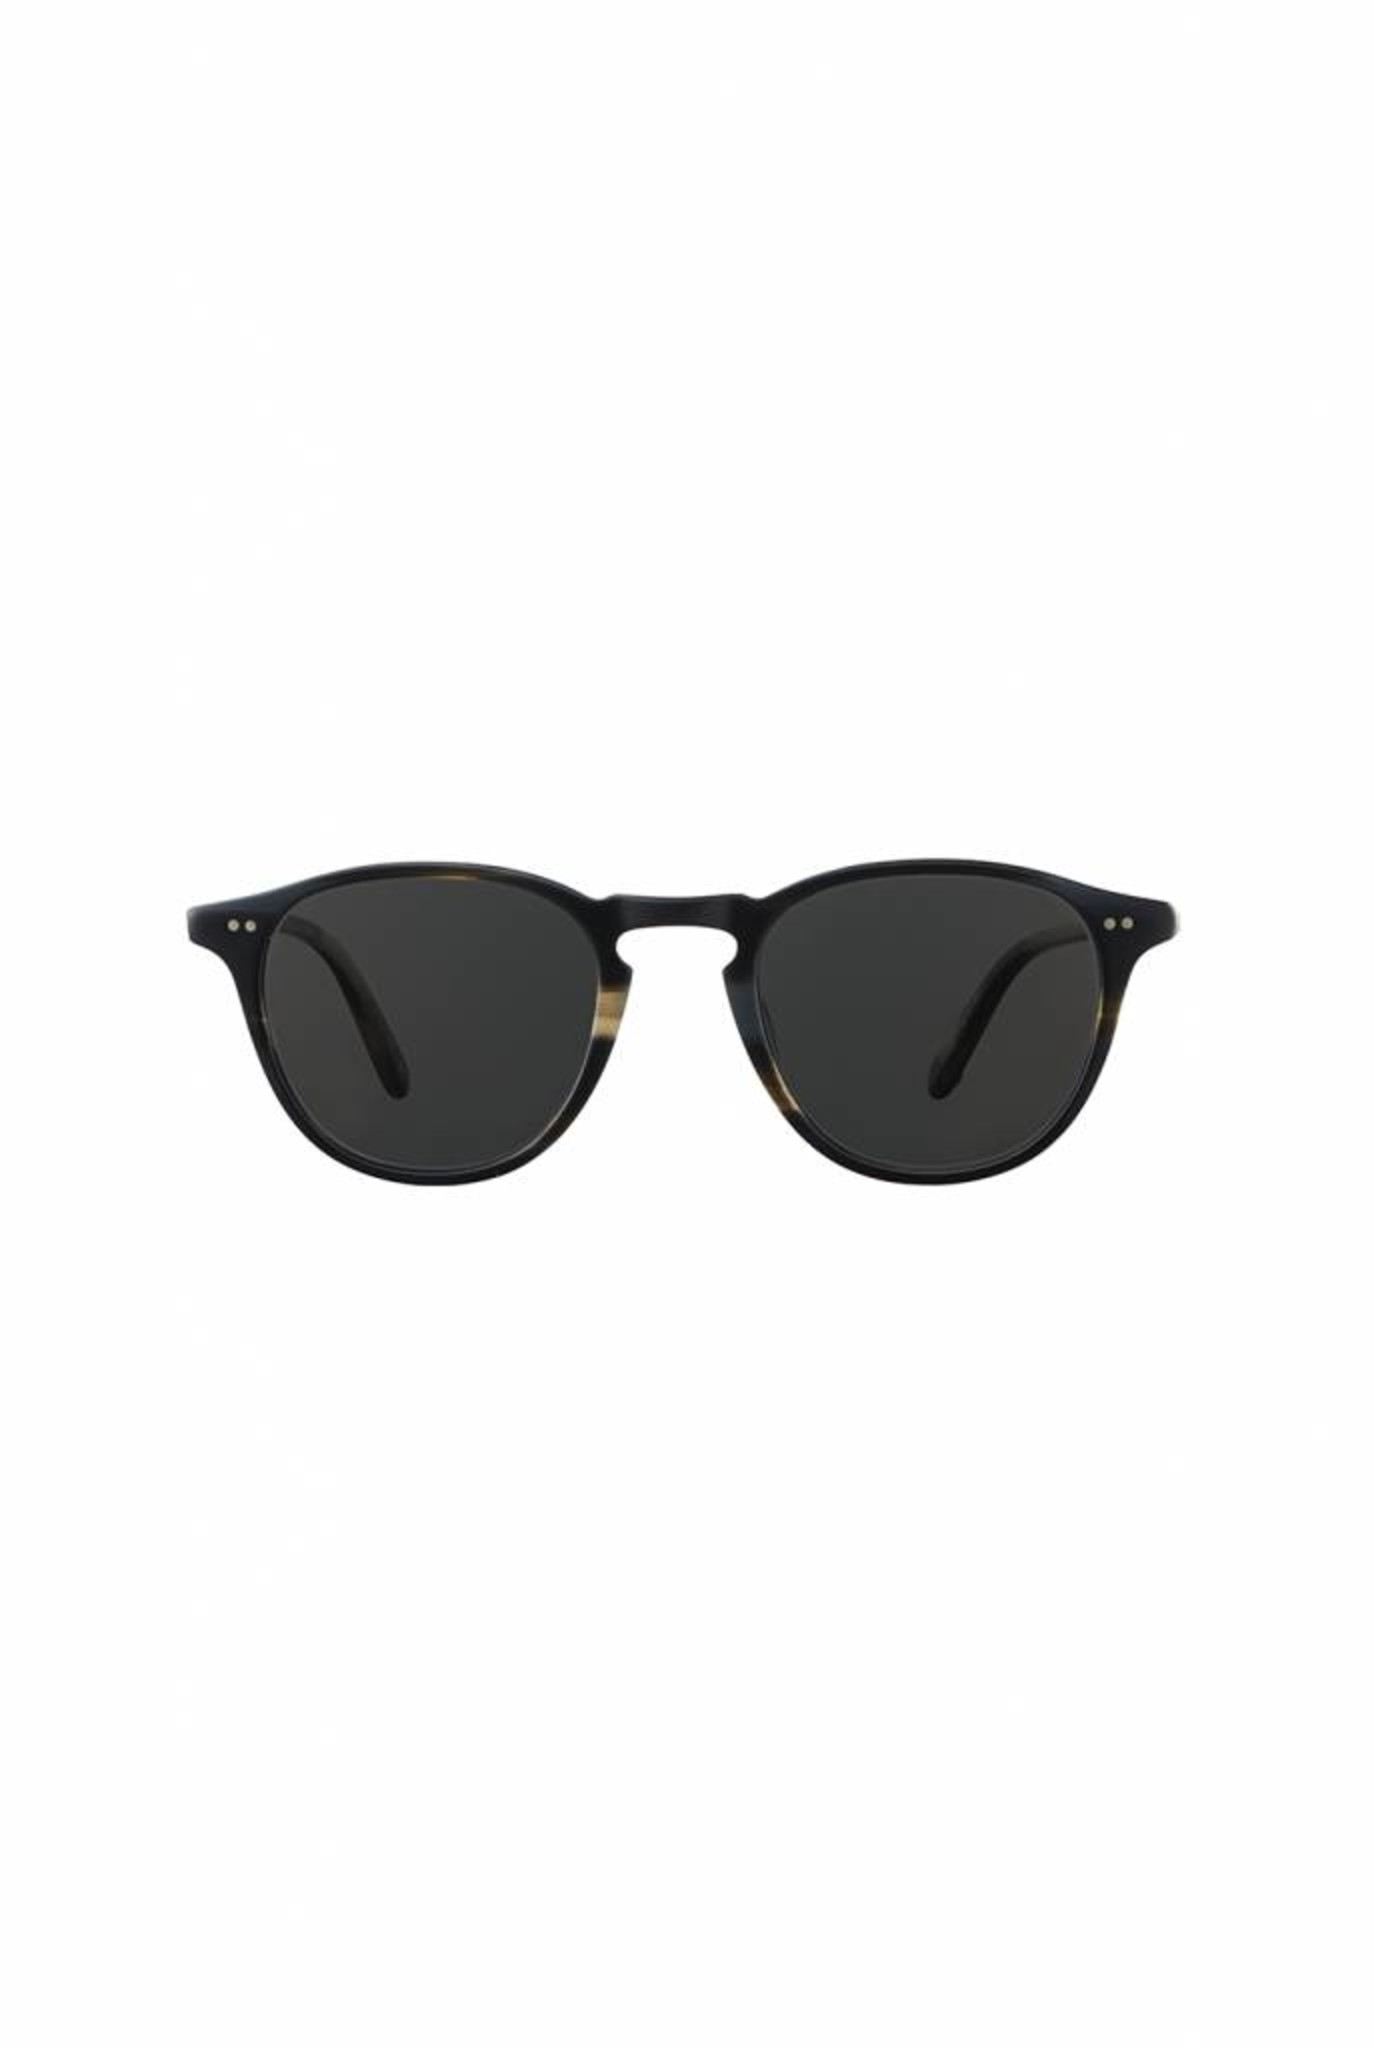 Hampton sunglasses basalt grey black